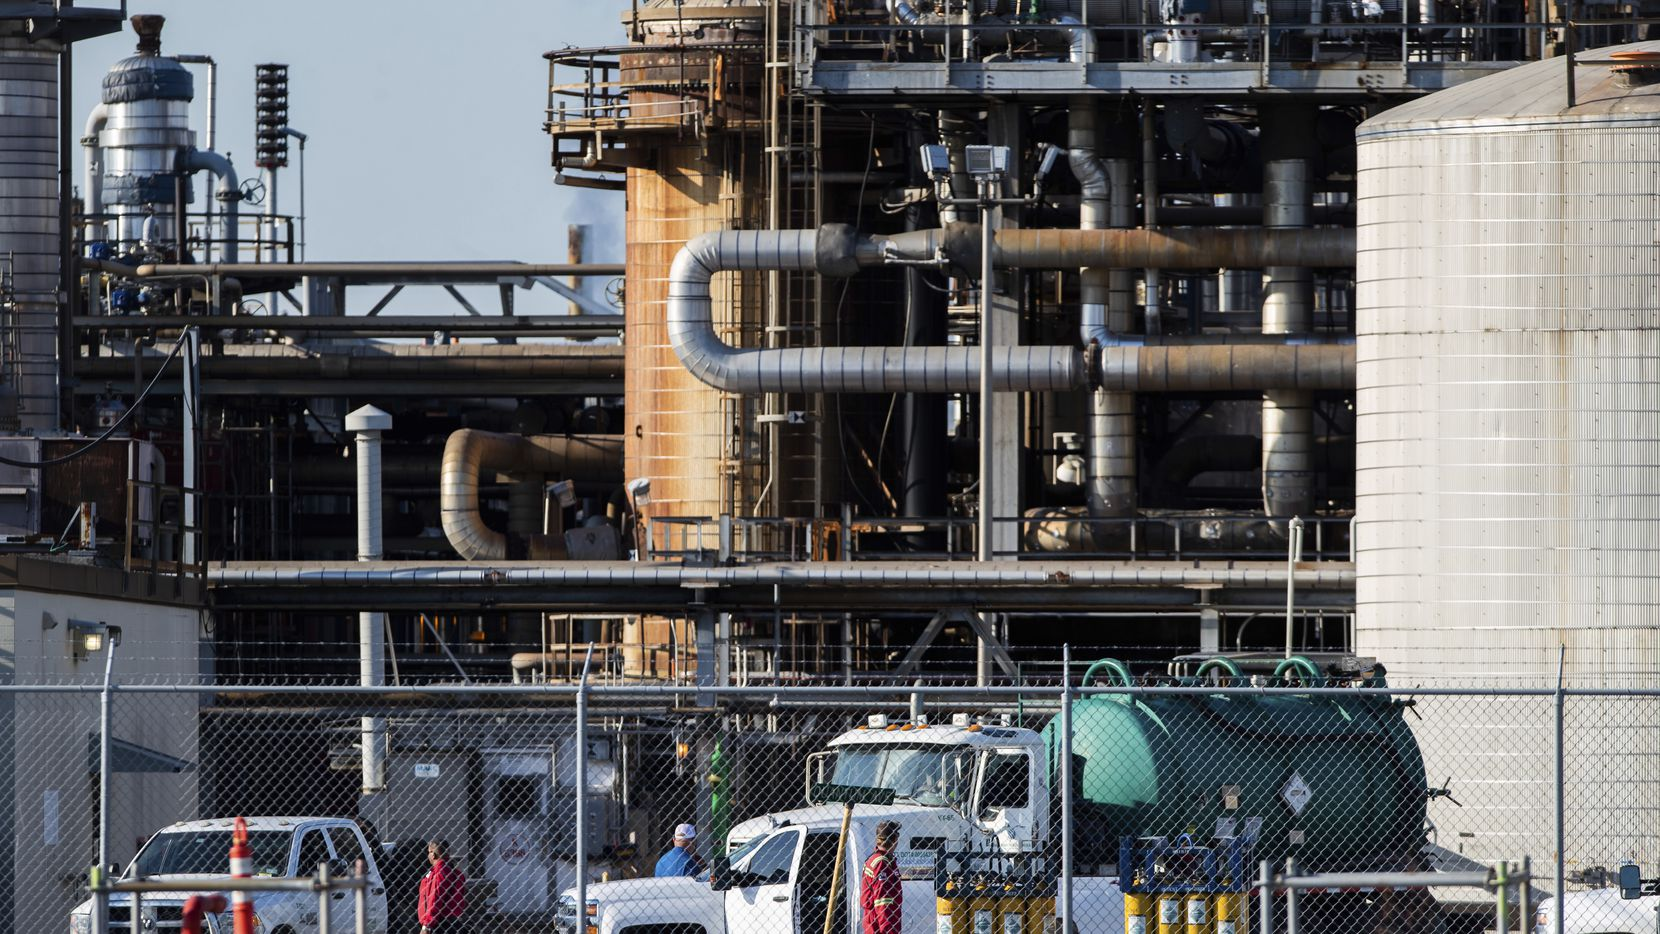 Workers stand in a lot at a LyondellBasell facility in La Porte. A chemical leak Tuesday evening killed two people at the facility and left dozens more hospitalized.